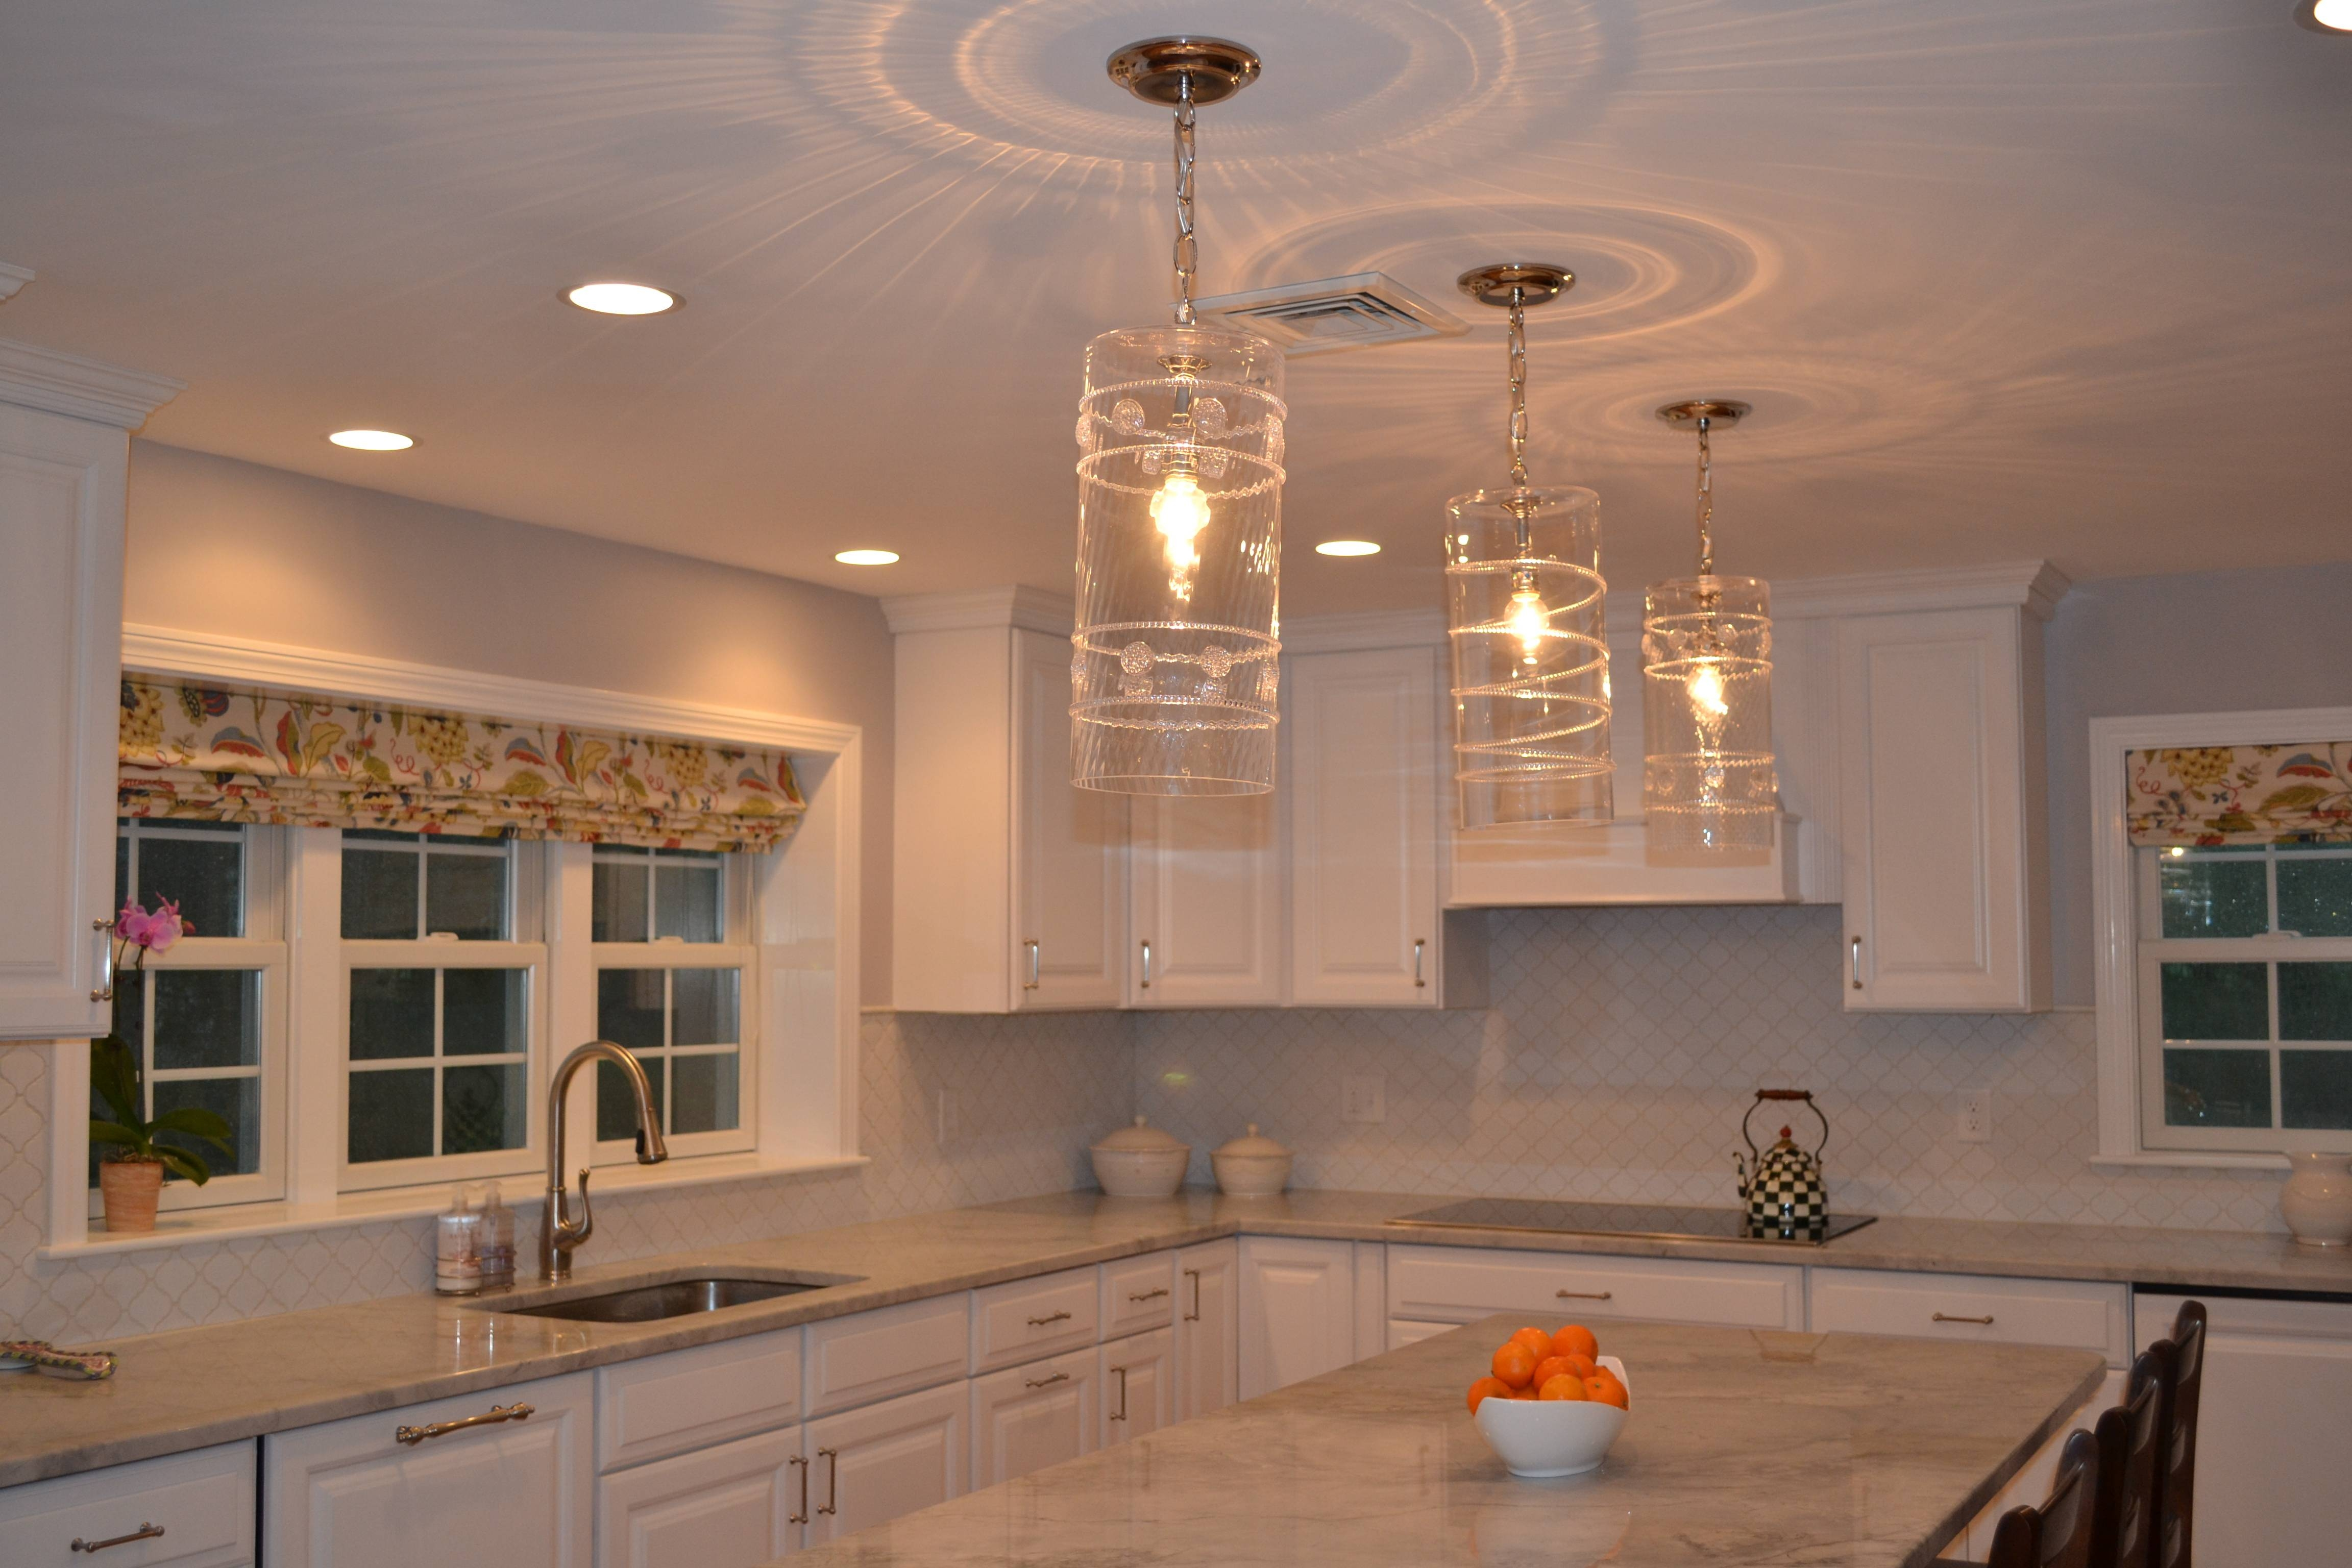 Beautiful Kitchen Pendant Lighting Over Island 84 For Orange Pertaining To Orange Pendant Lights For Kitchen (View 9 of 15)